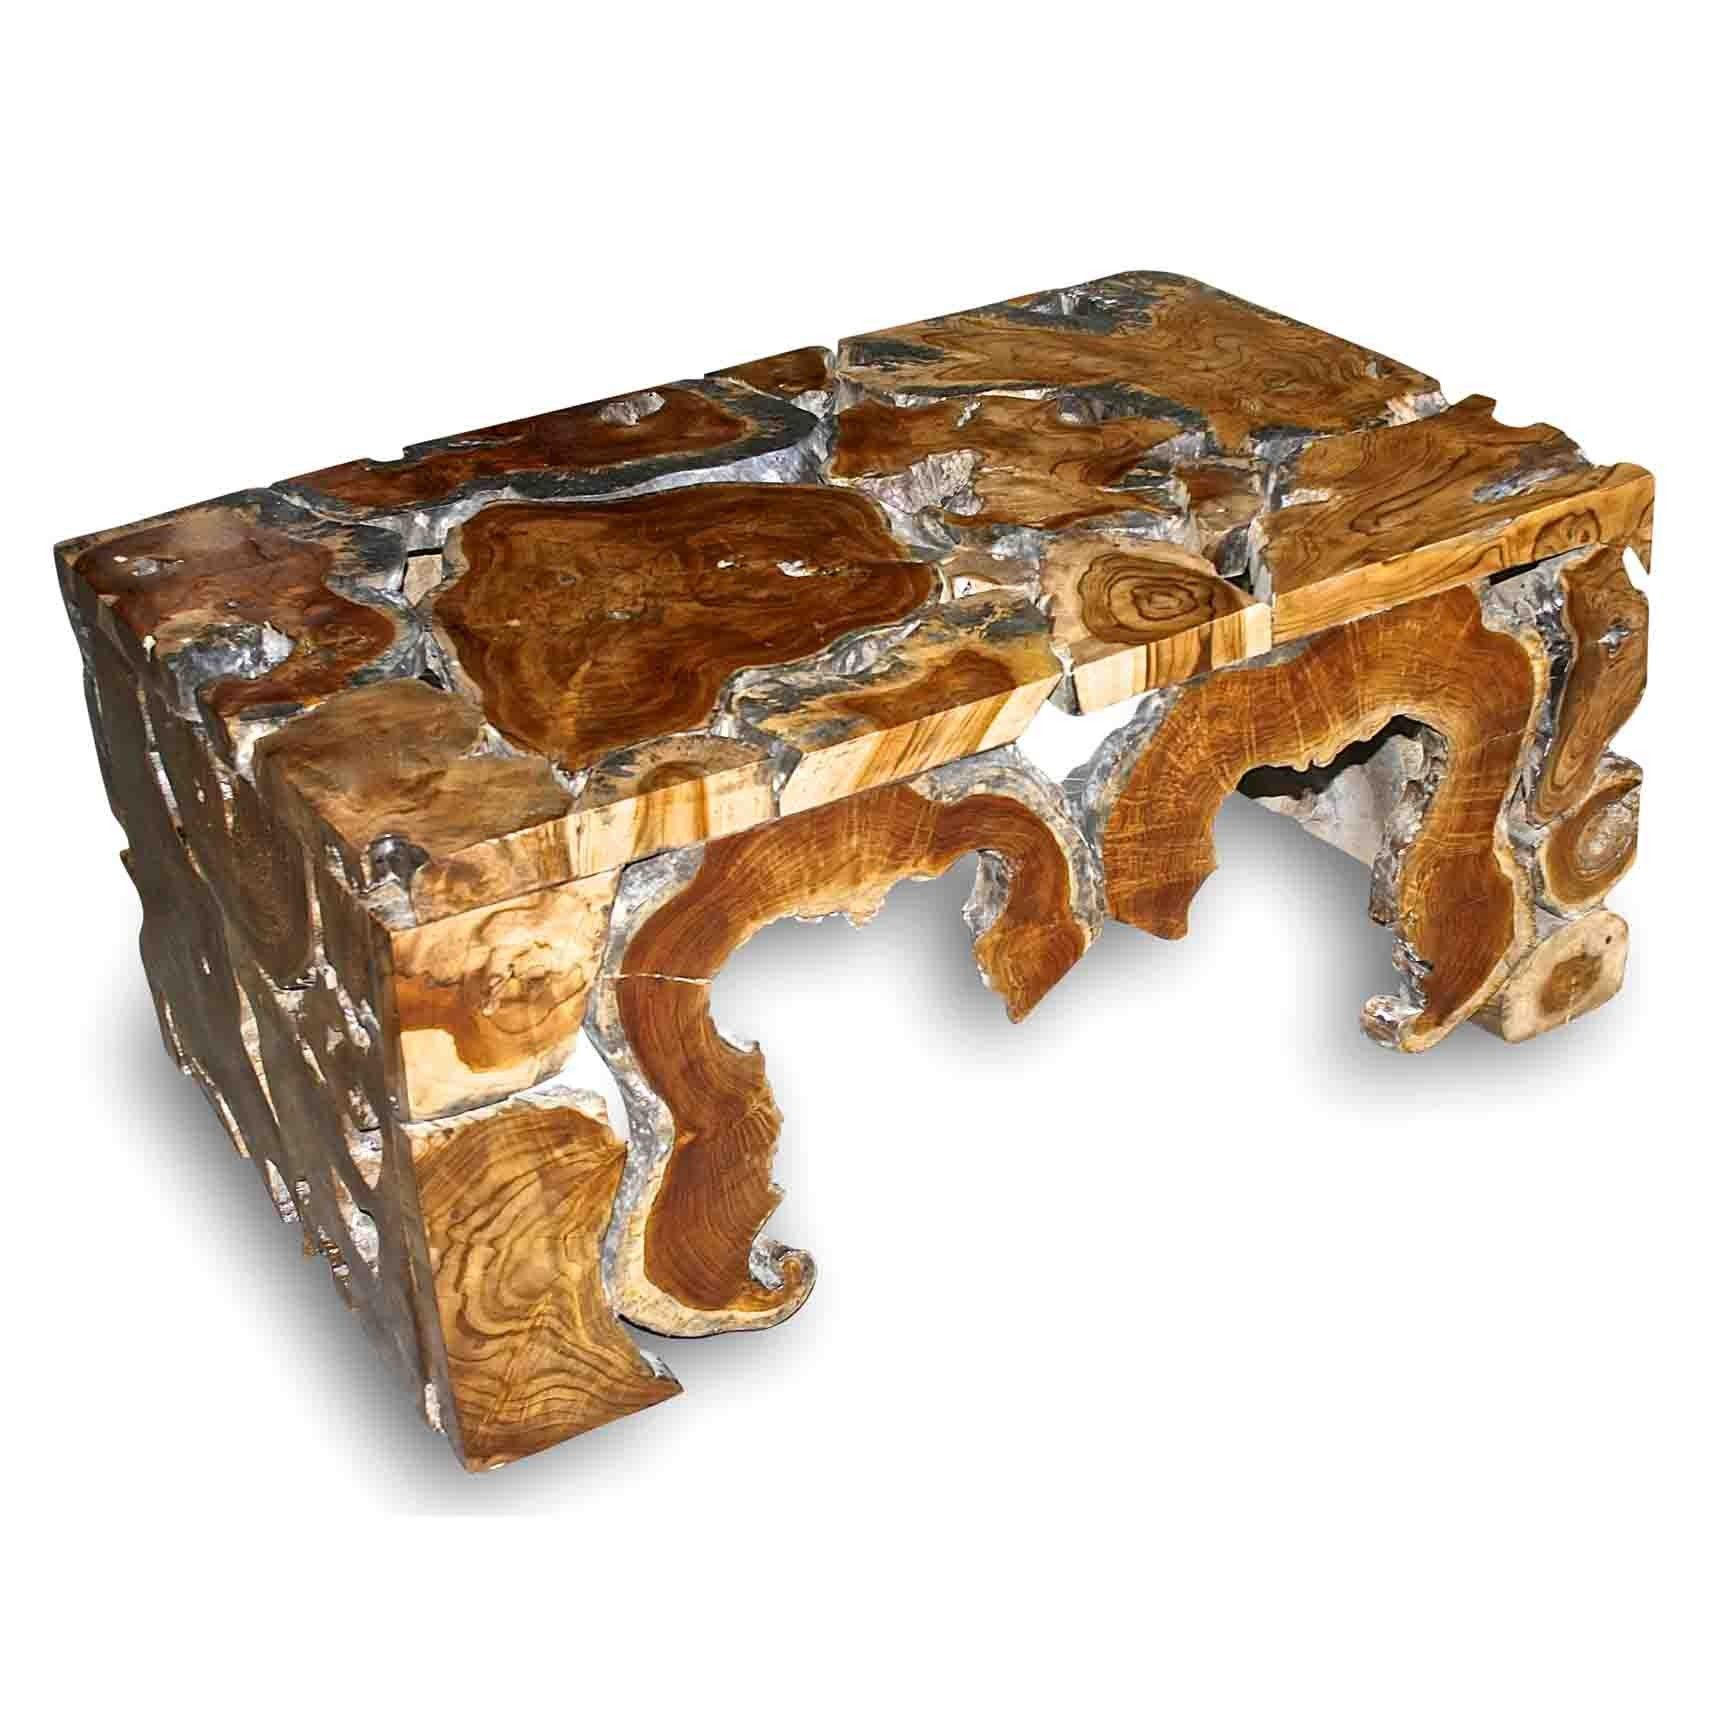 Natural Wood Tables Natural Wood Coffee Table Natural Wood Coffee Table Coffee Table Coffee Table Wood